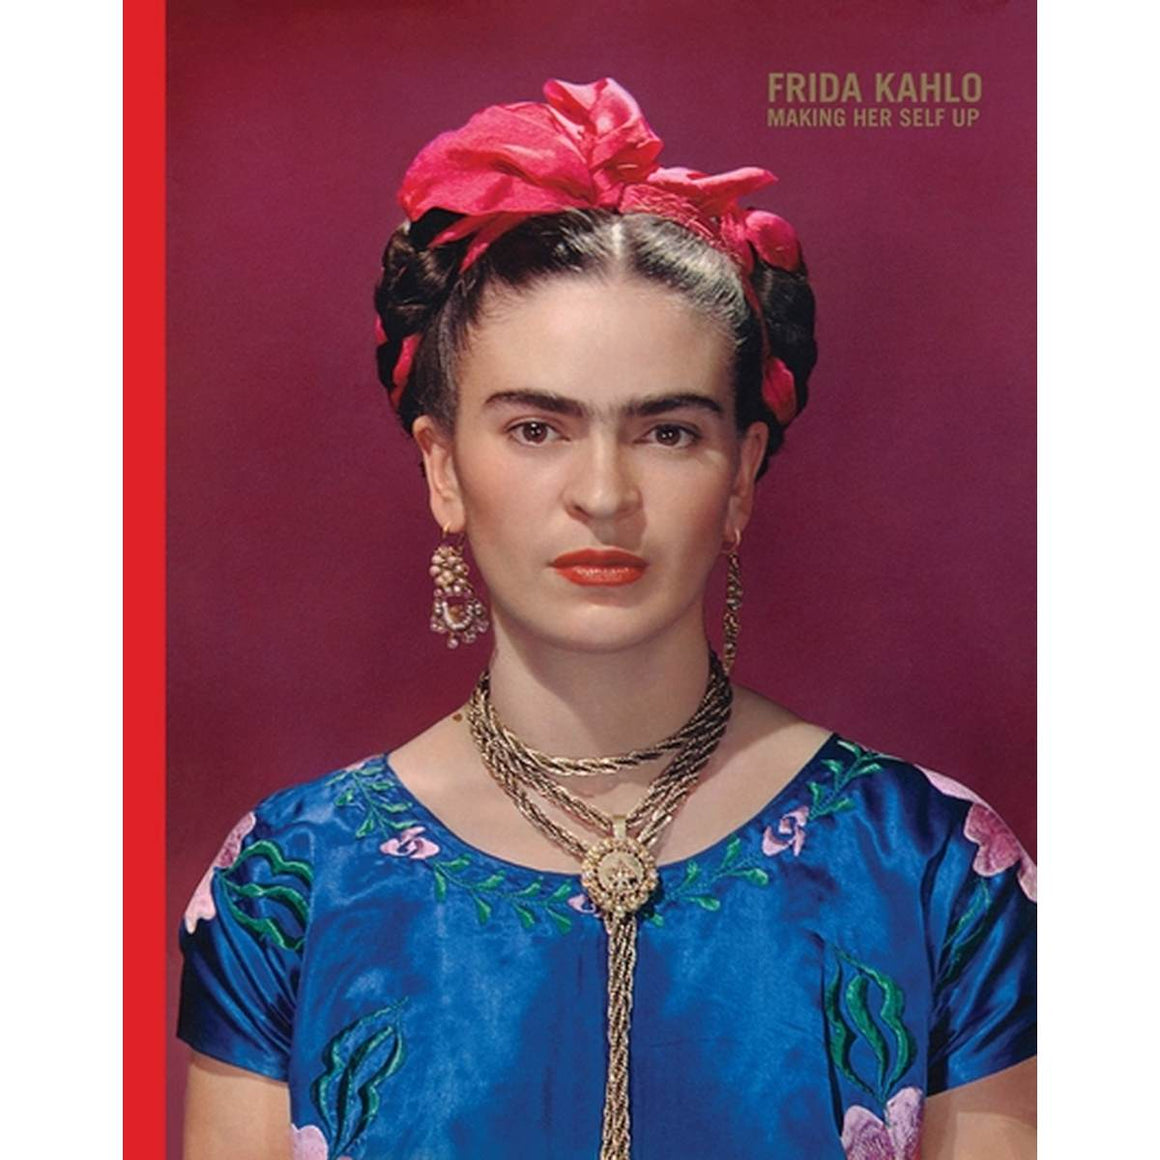 A book cover with a cover vibrantly coloured photo of artist Frida Kahlo on a maroon background